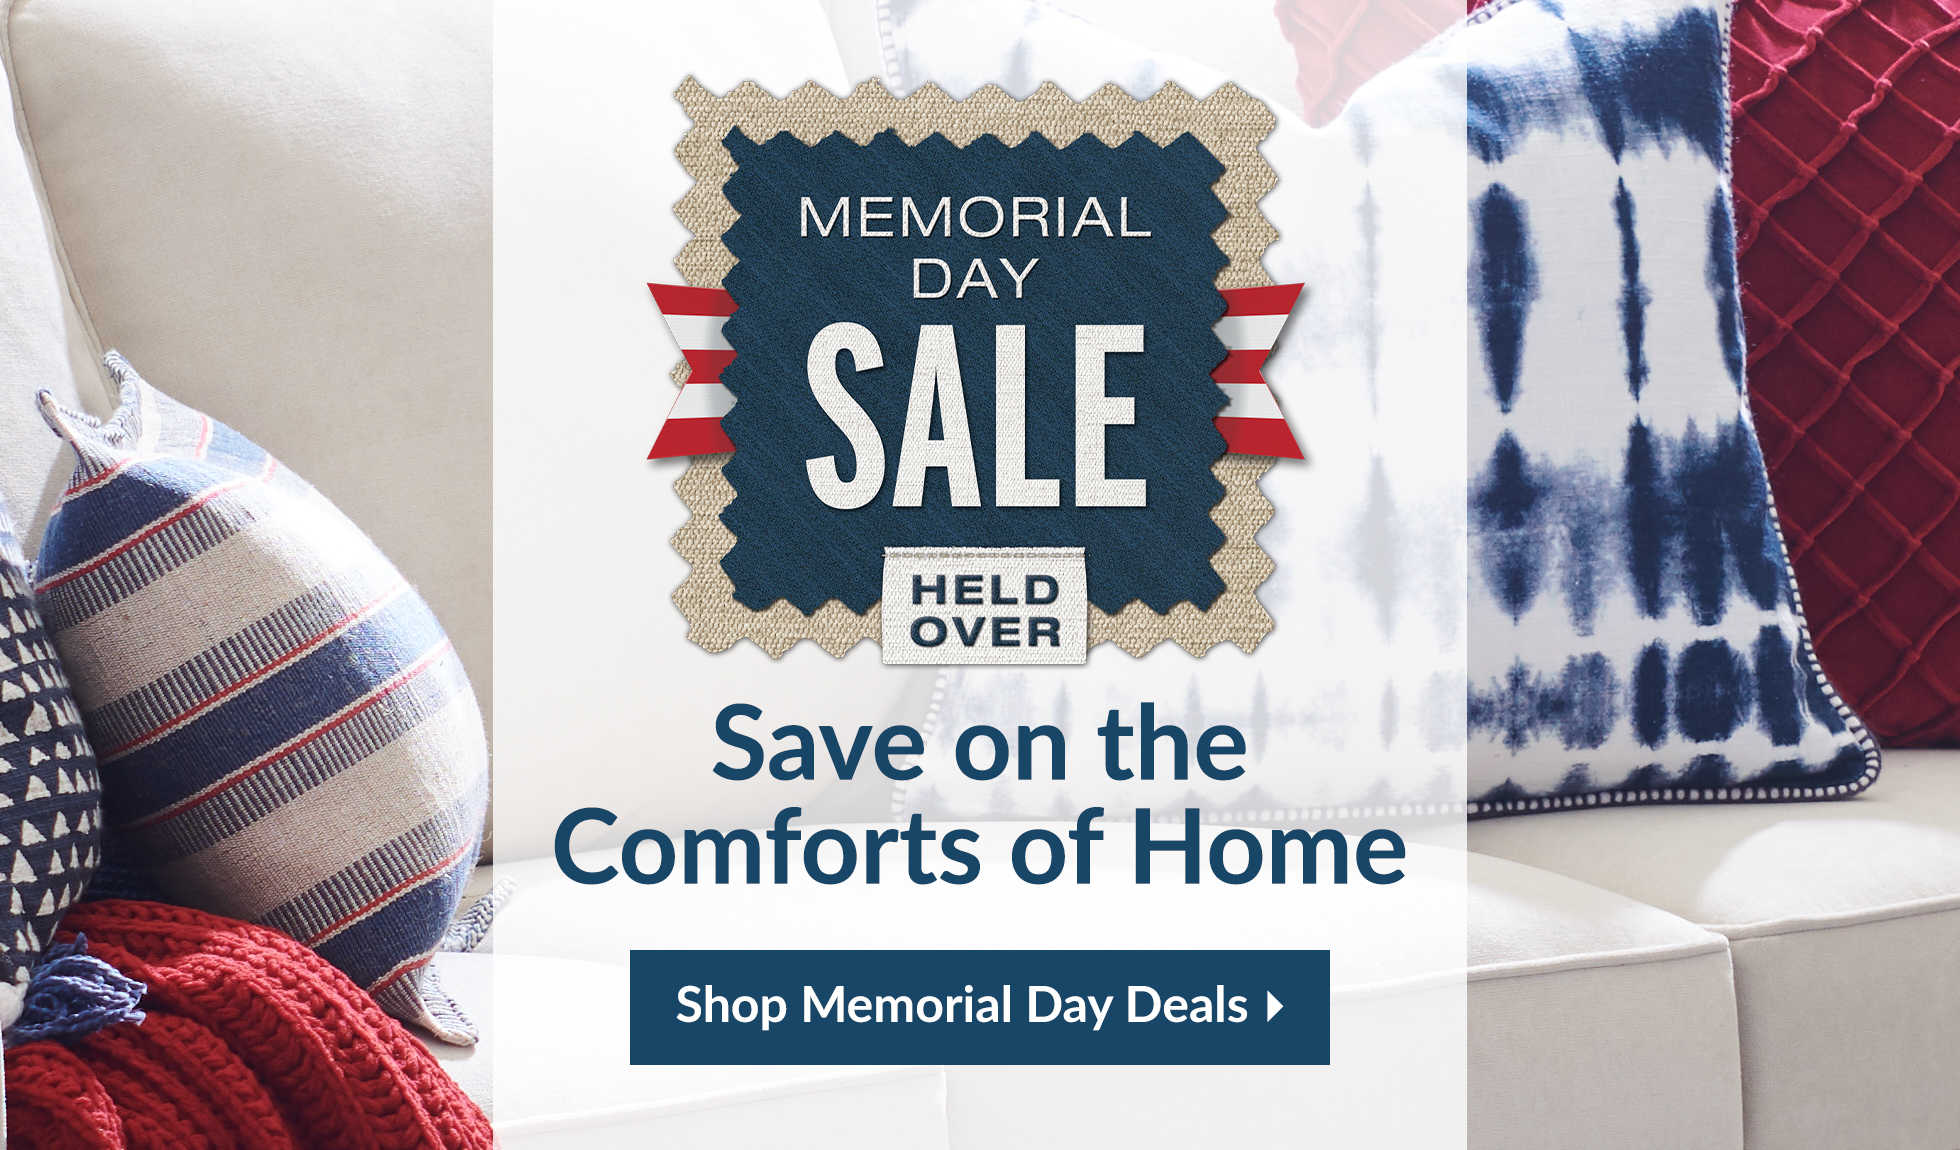 Shop Memorial Day Deals